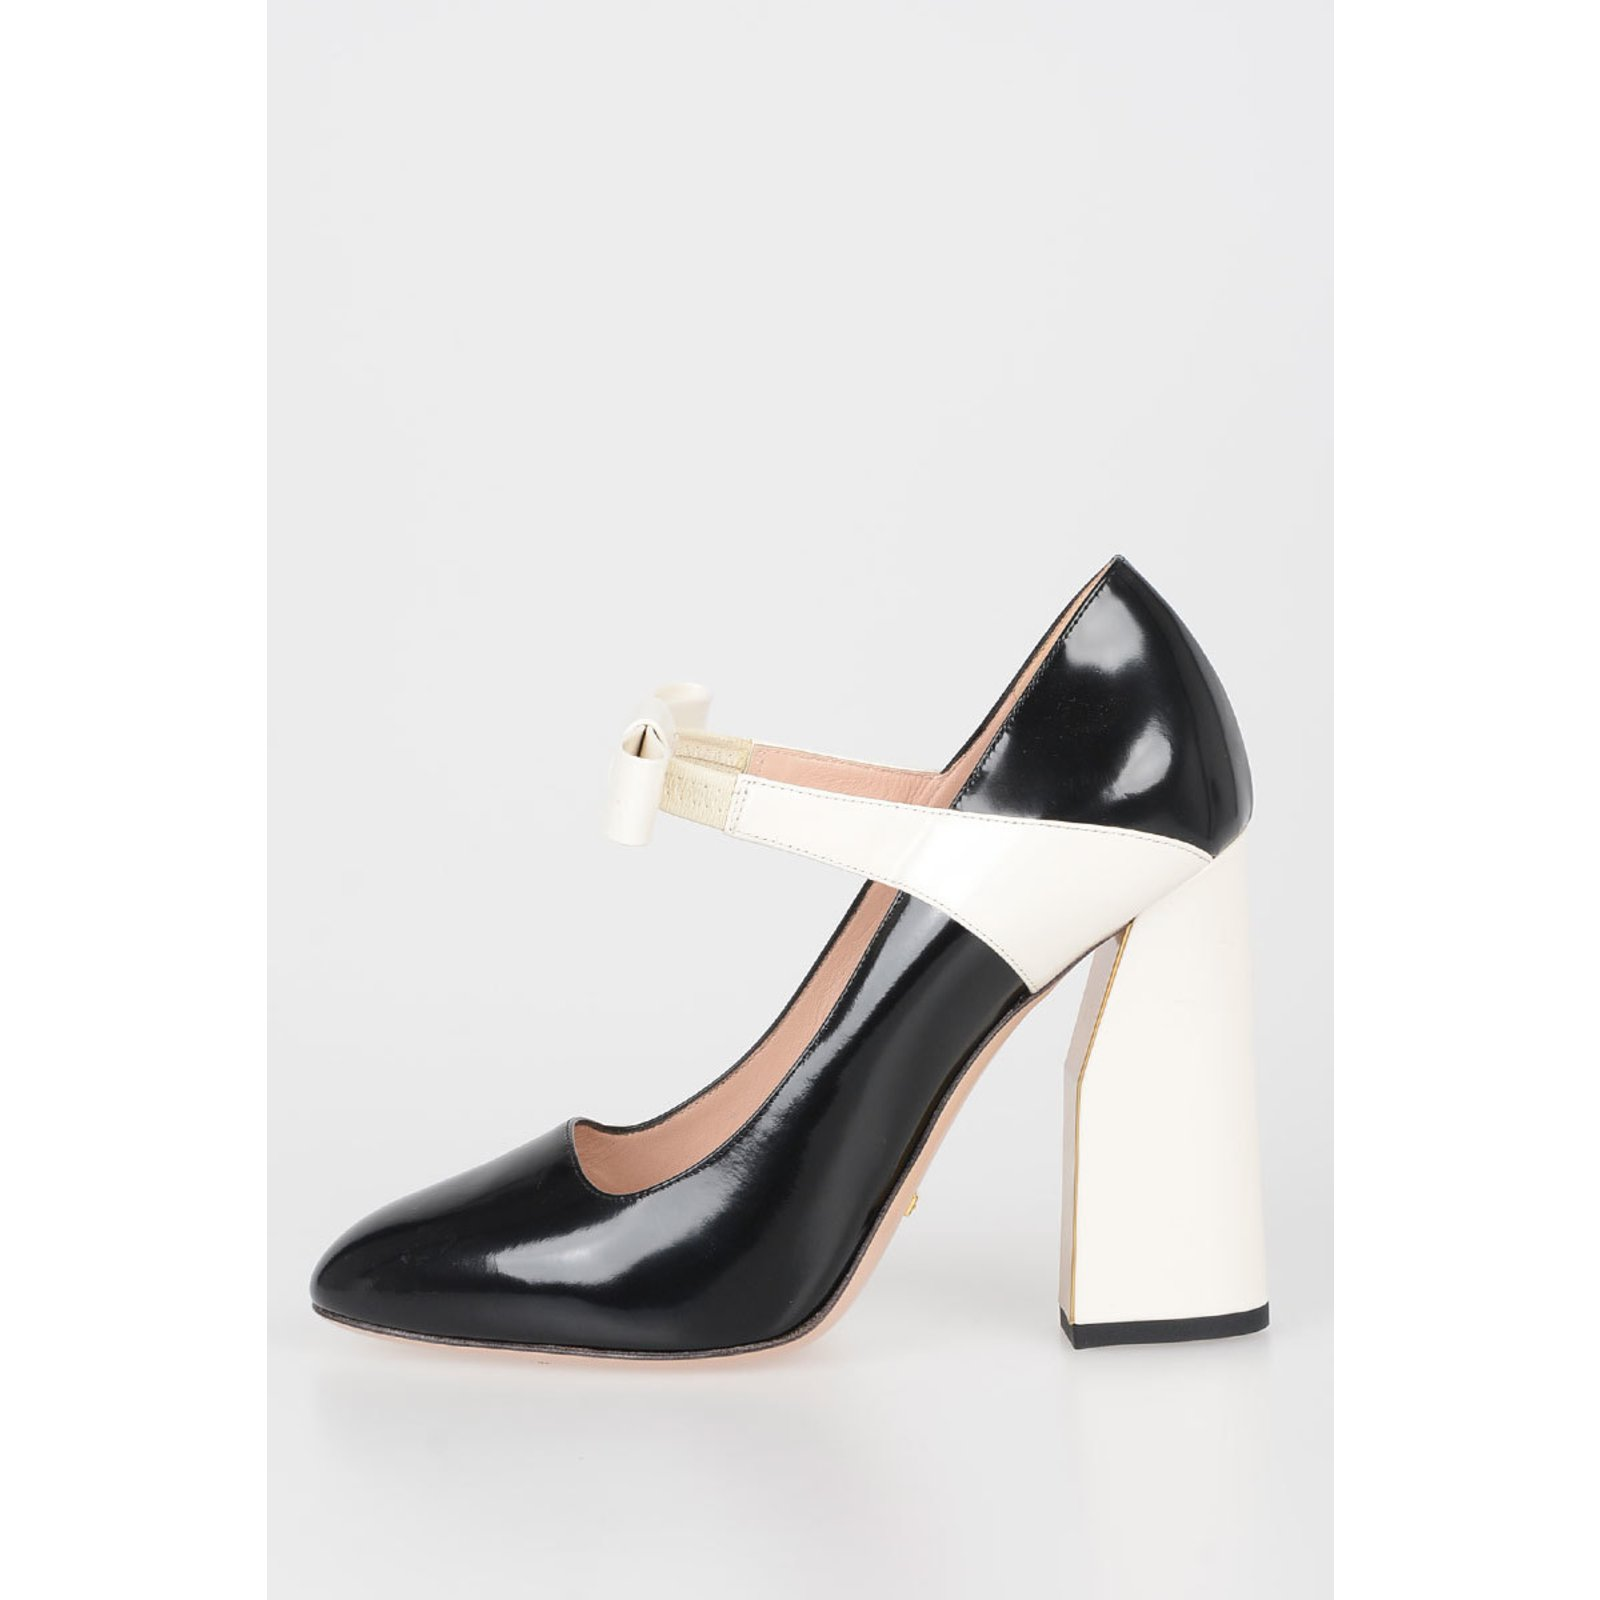 Gucci Gucci shoes new Heels Leather Other ref.107297 - Joli Closet ac5034767